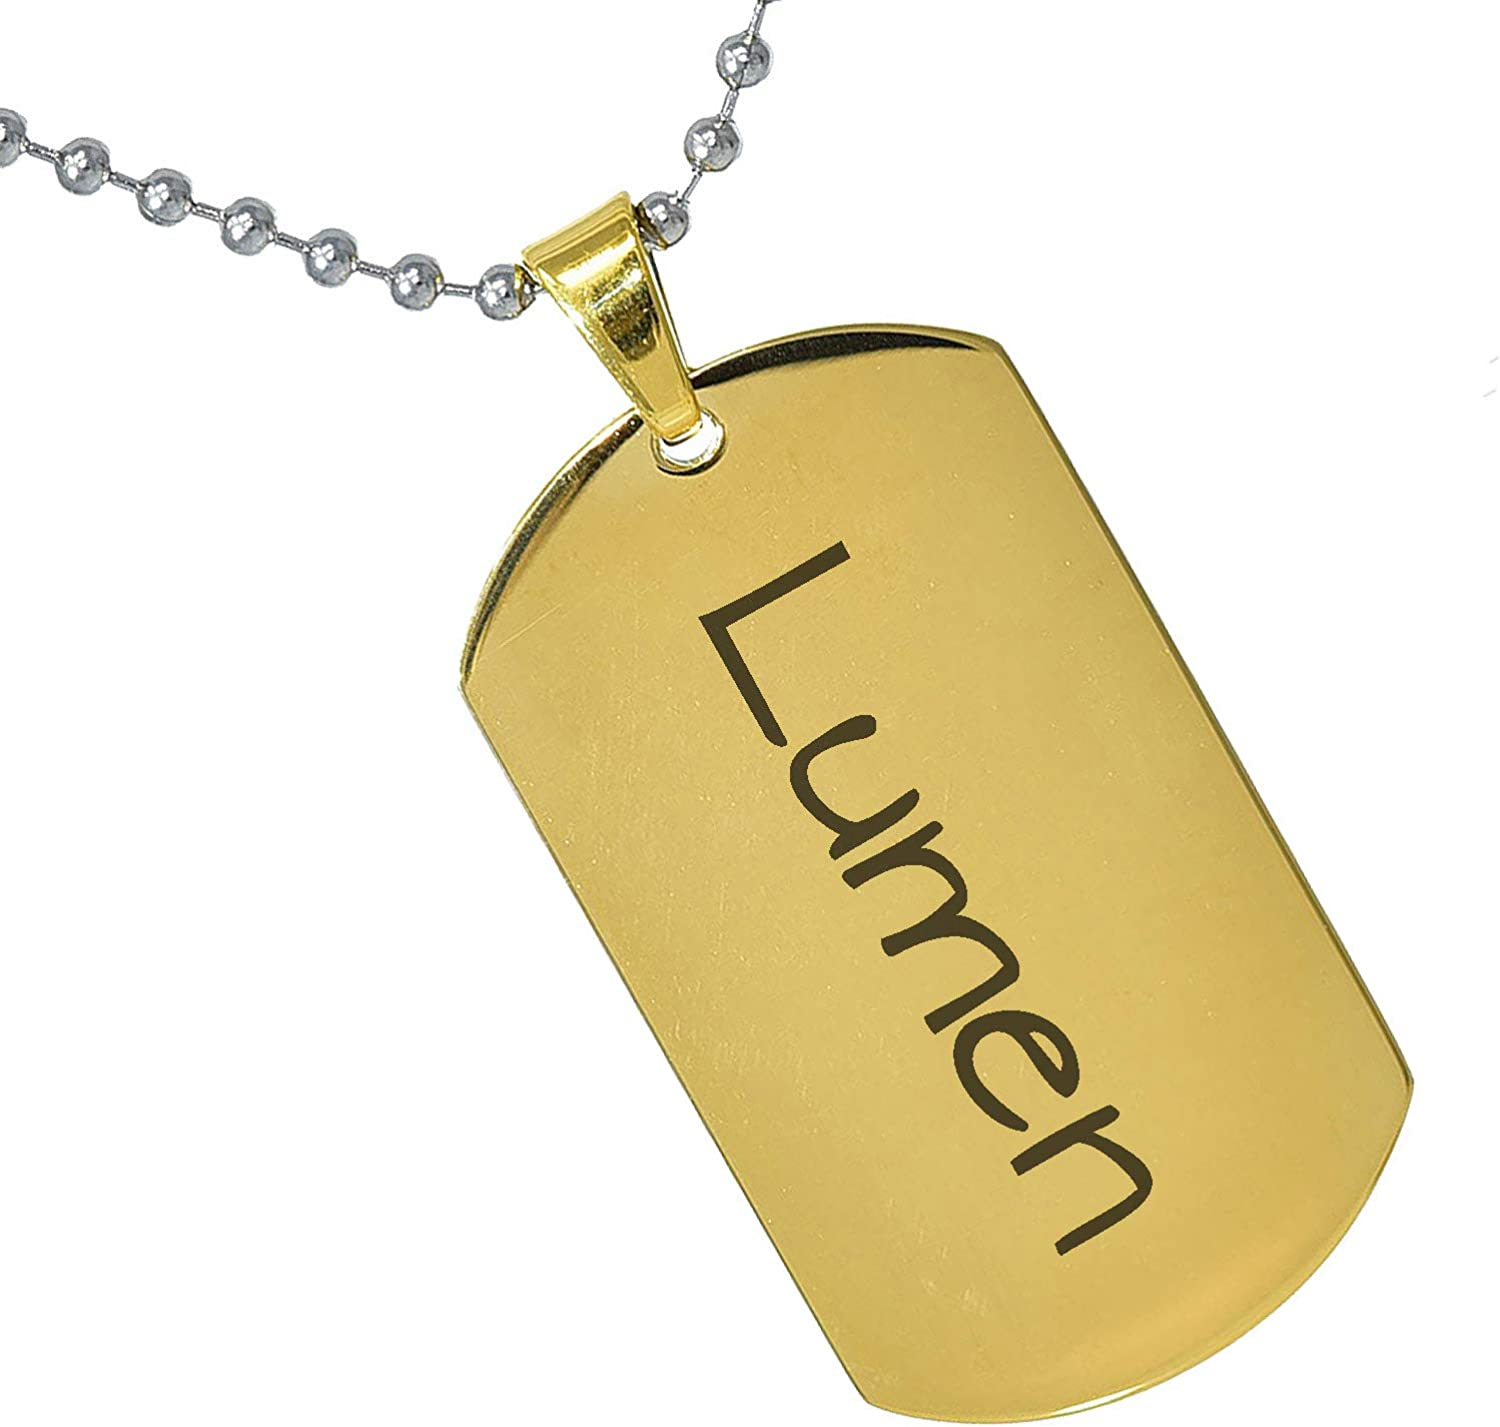 Stainless Steel Silver Gold Black Rose Gold Color Baby Name Lumen Engraved Personalized Gifts For Son Daughter Boyfriend Girlfriend Initial Customizable Pendant Necklace Dog Tags 24 Ball Chain